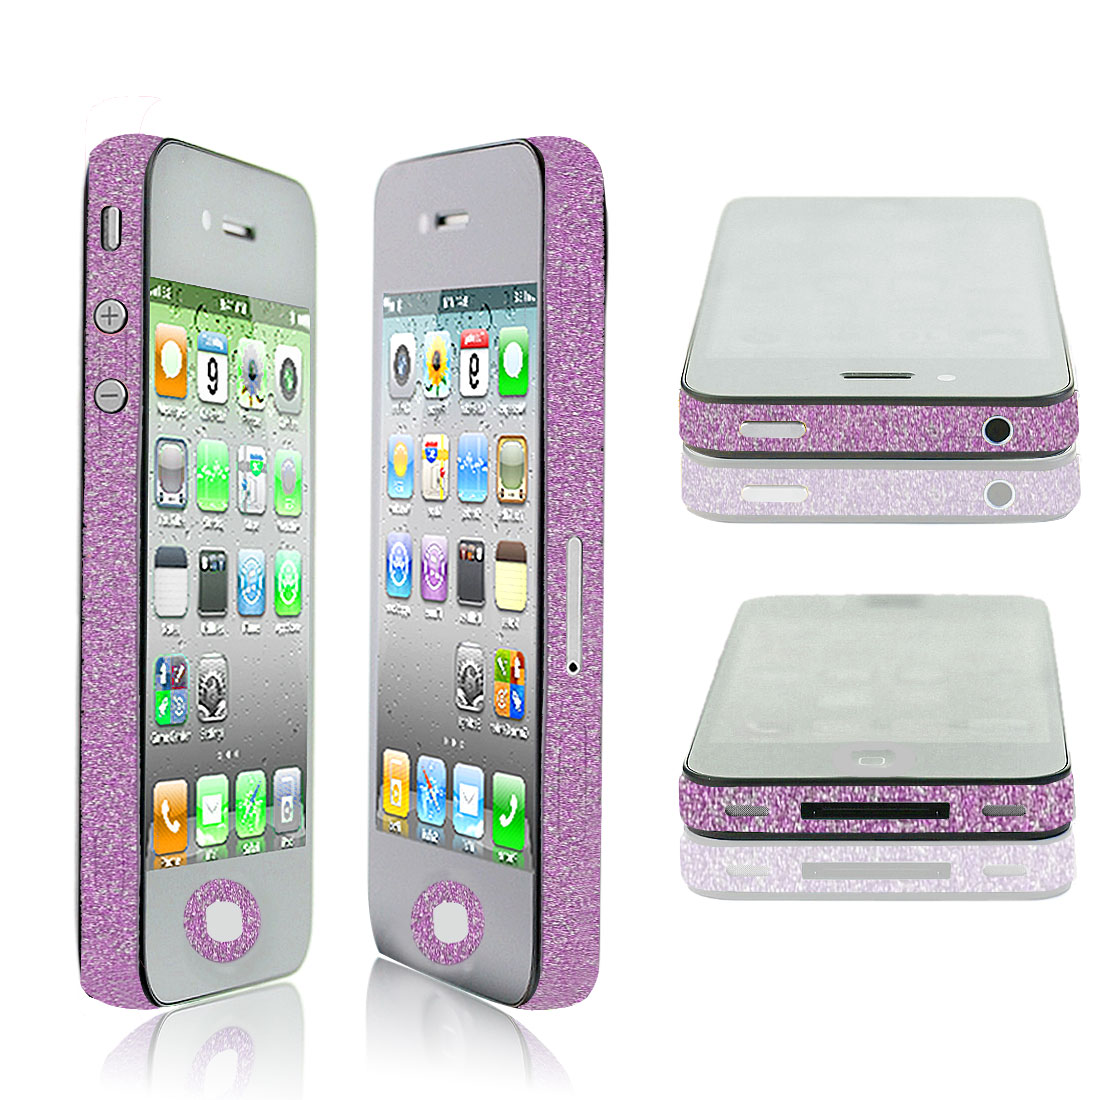 Glitter Light Purple Vinyl Edge Wrap Decal Skin Sticker for iPhone 4 4G 4S 4GS